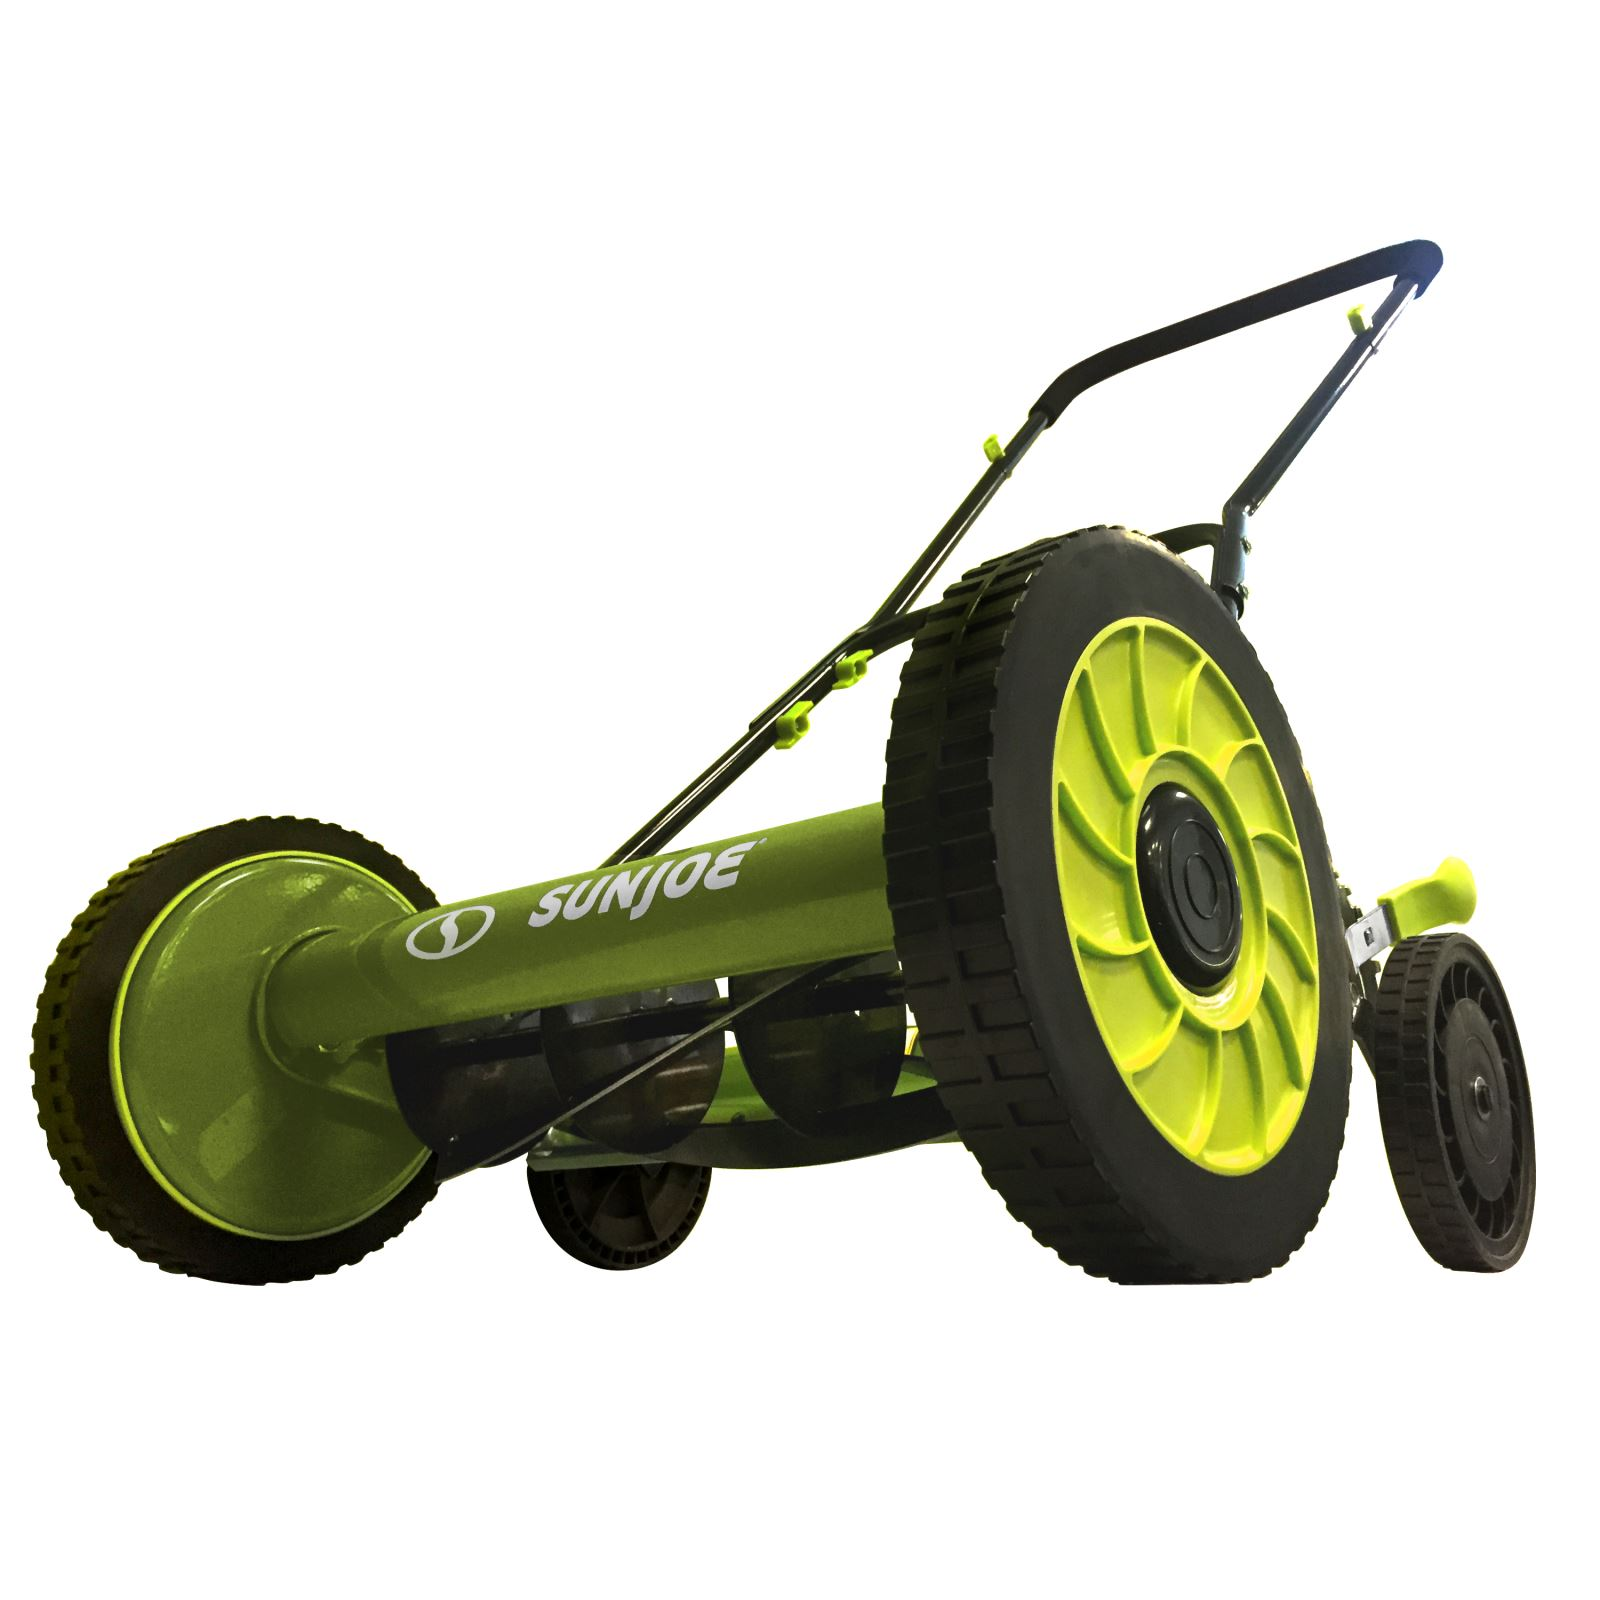 Sun Joe MJ504M Manual Reel Mower w o Grass Catcher | 16 inch | 9 Height Positions by Snow Joe LLC